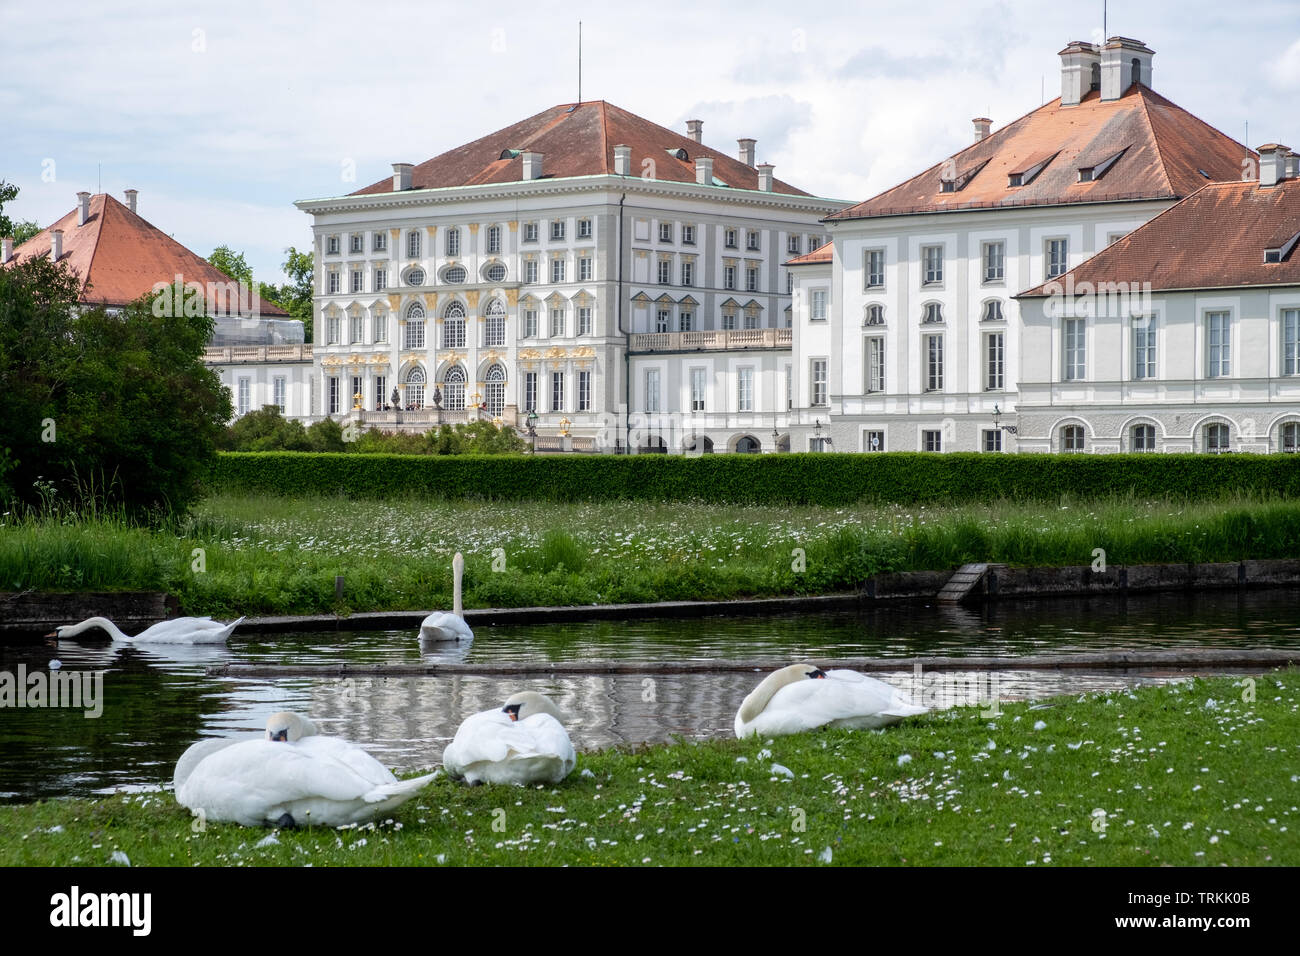 may-2019-mute-swans-gather-in-front-of-schloss-nymphenburg-in-munich-germany-TRKK0B.jpg